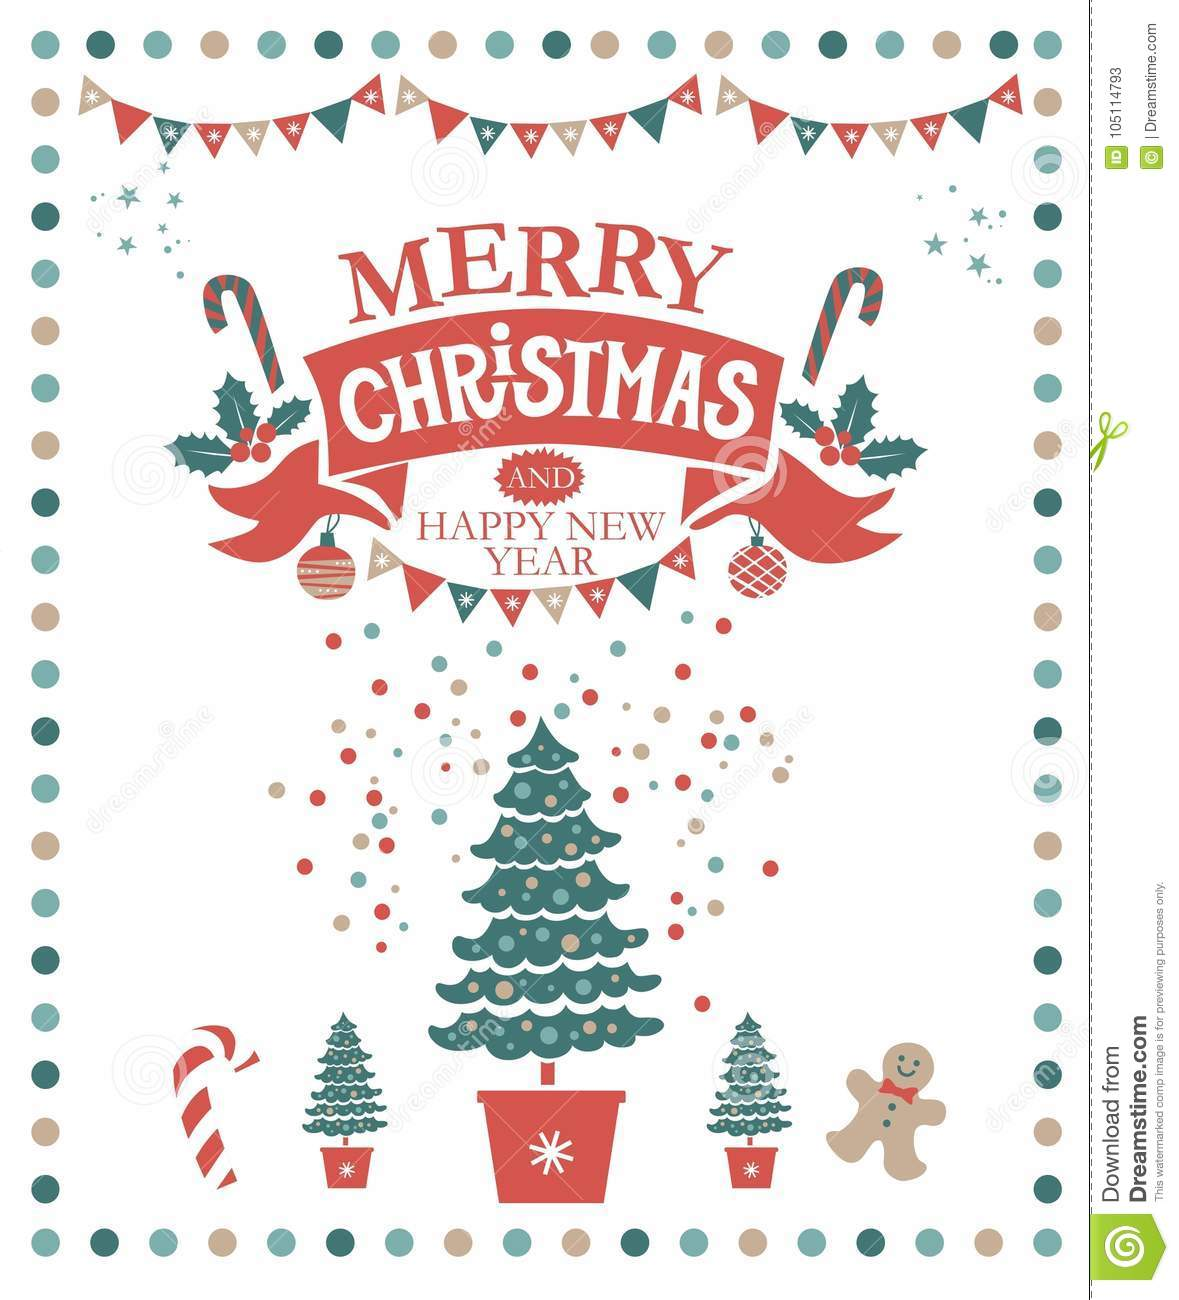 69ba54cf4616 Lettering merry Christmas and a Happy New year on a red ribbon and festive  decorations: garland, socks with presents, sweets, Christmas decorations.